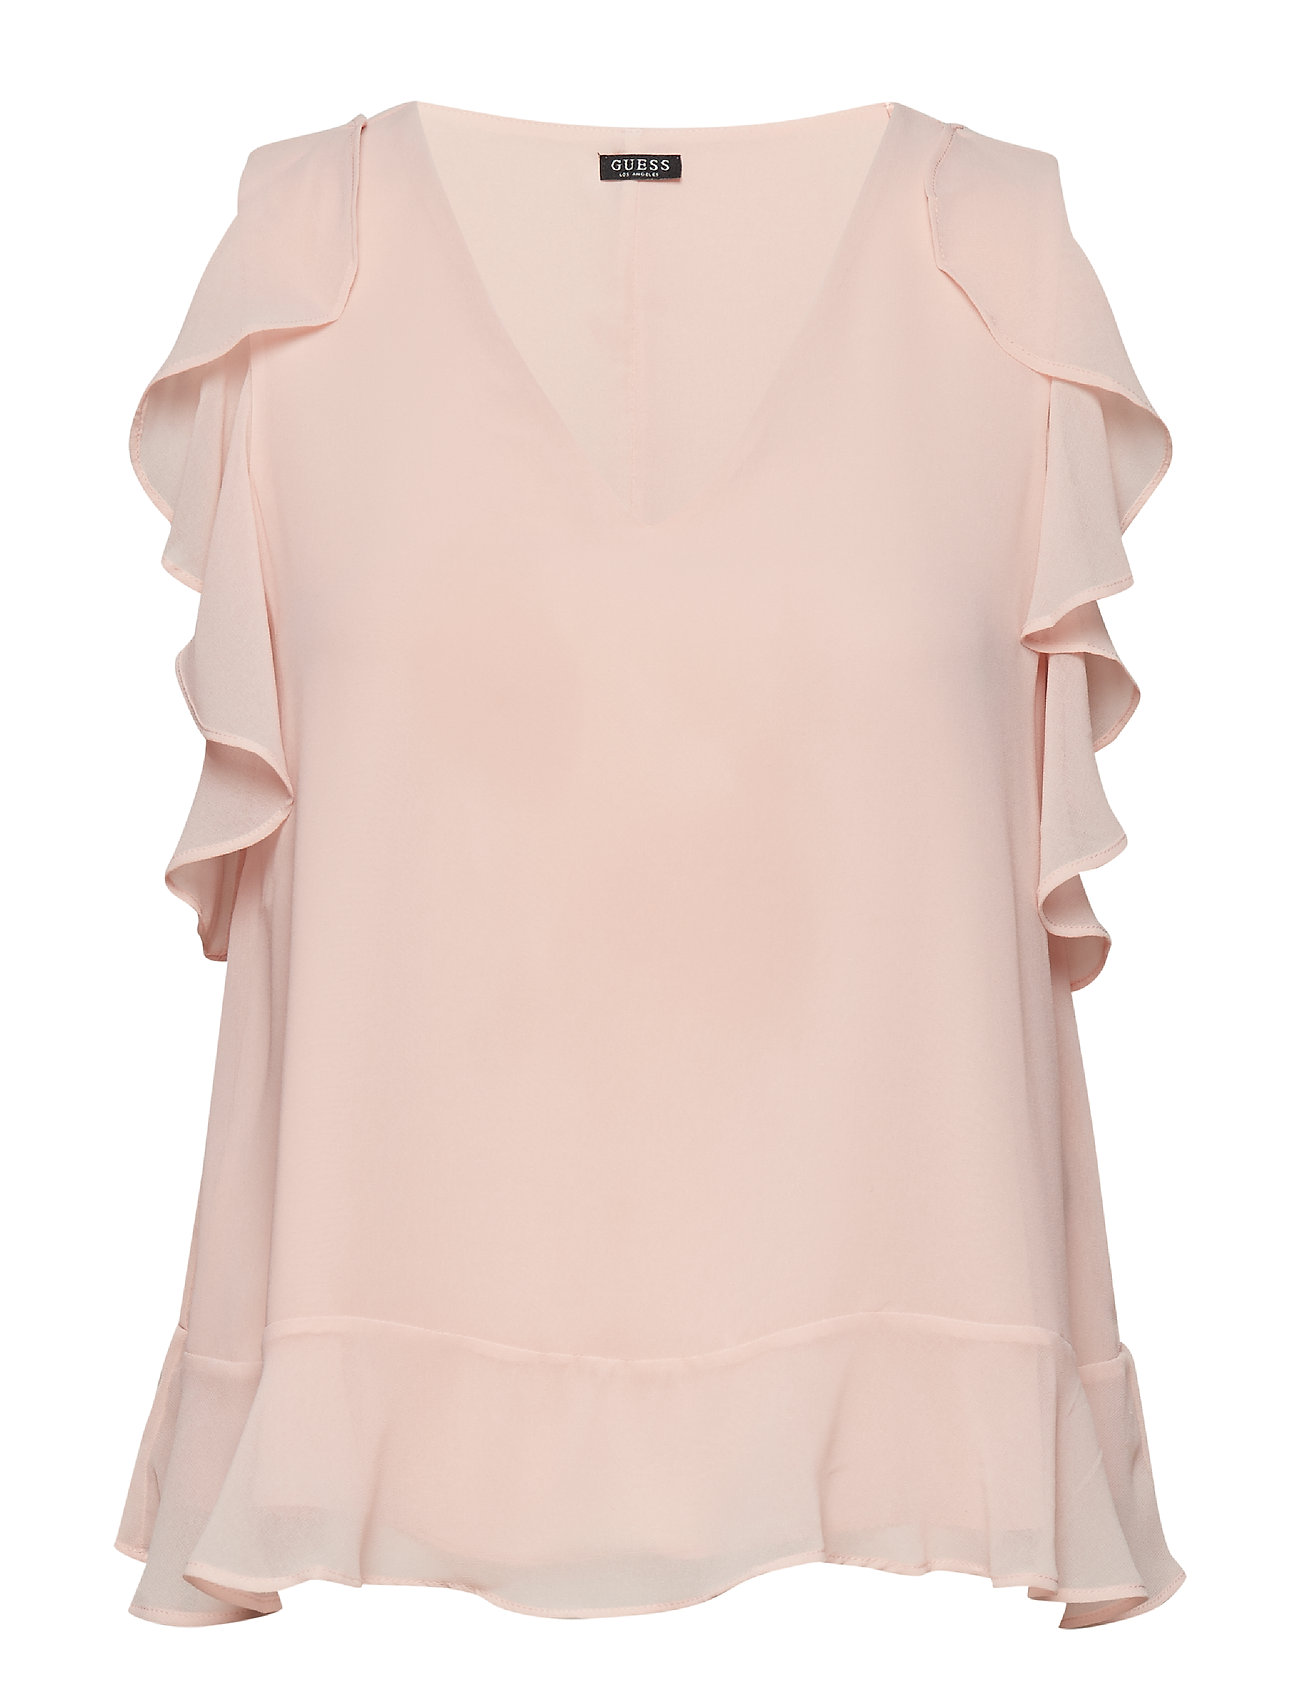 GUESS Jeans SS HOPE TOP - PALE SAND